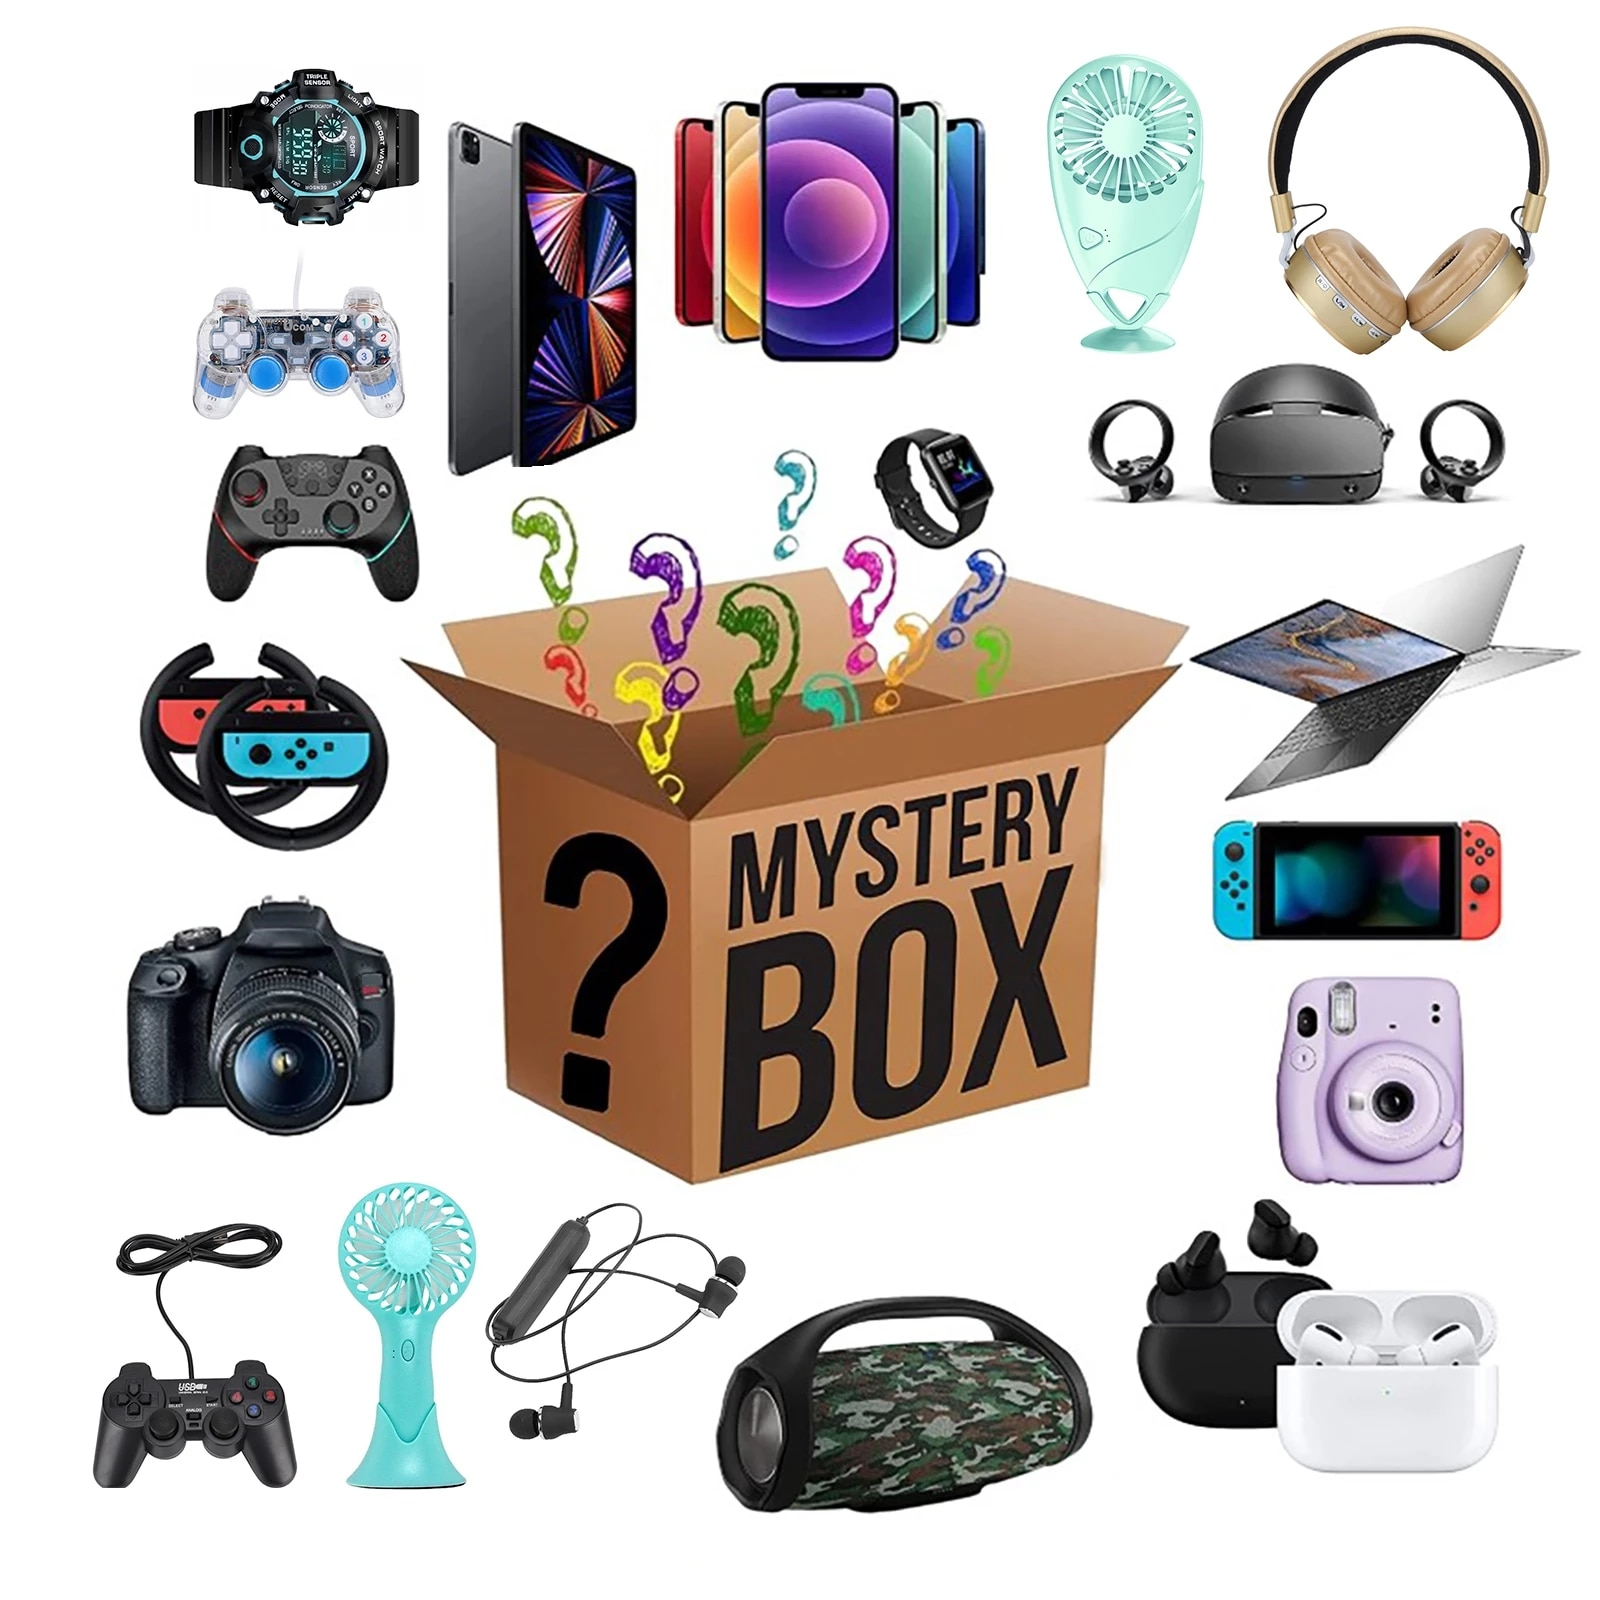 Most Popular New Lucky Mystery Box 100% Surprise High-quality Gift More Random Home Item Electronic